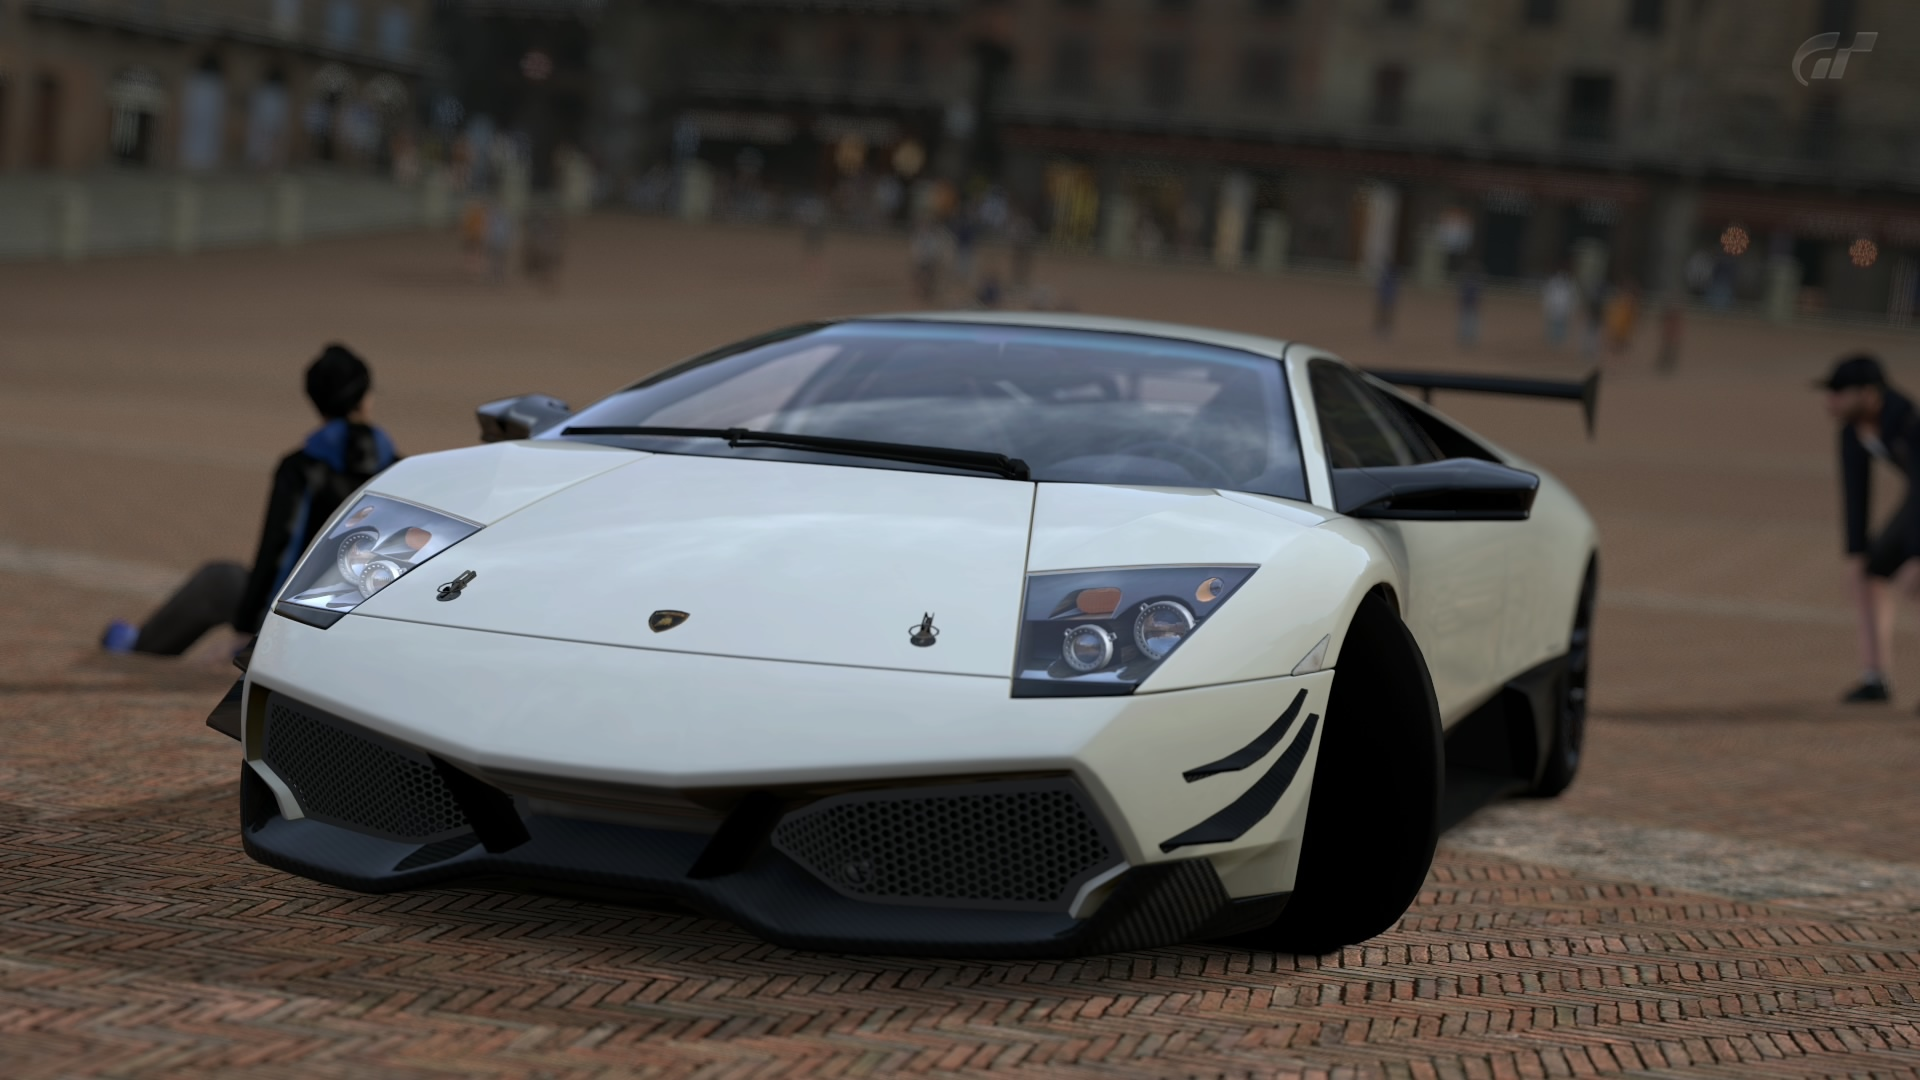 cars Lamborghini Gran Turismo HD Wallpaper